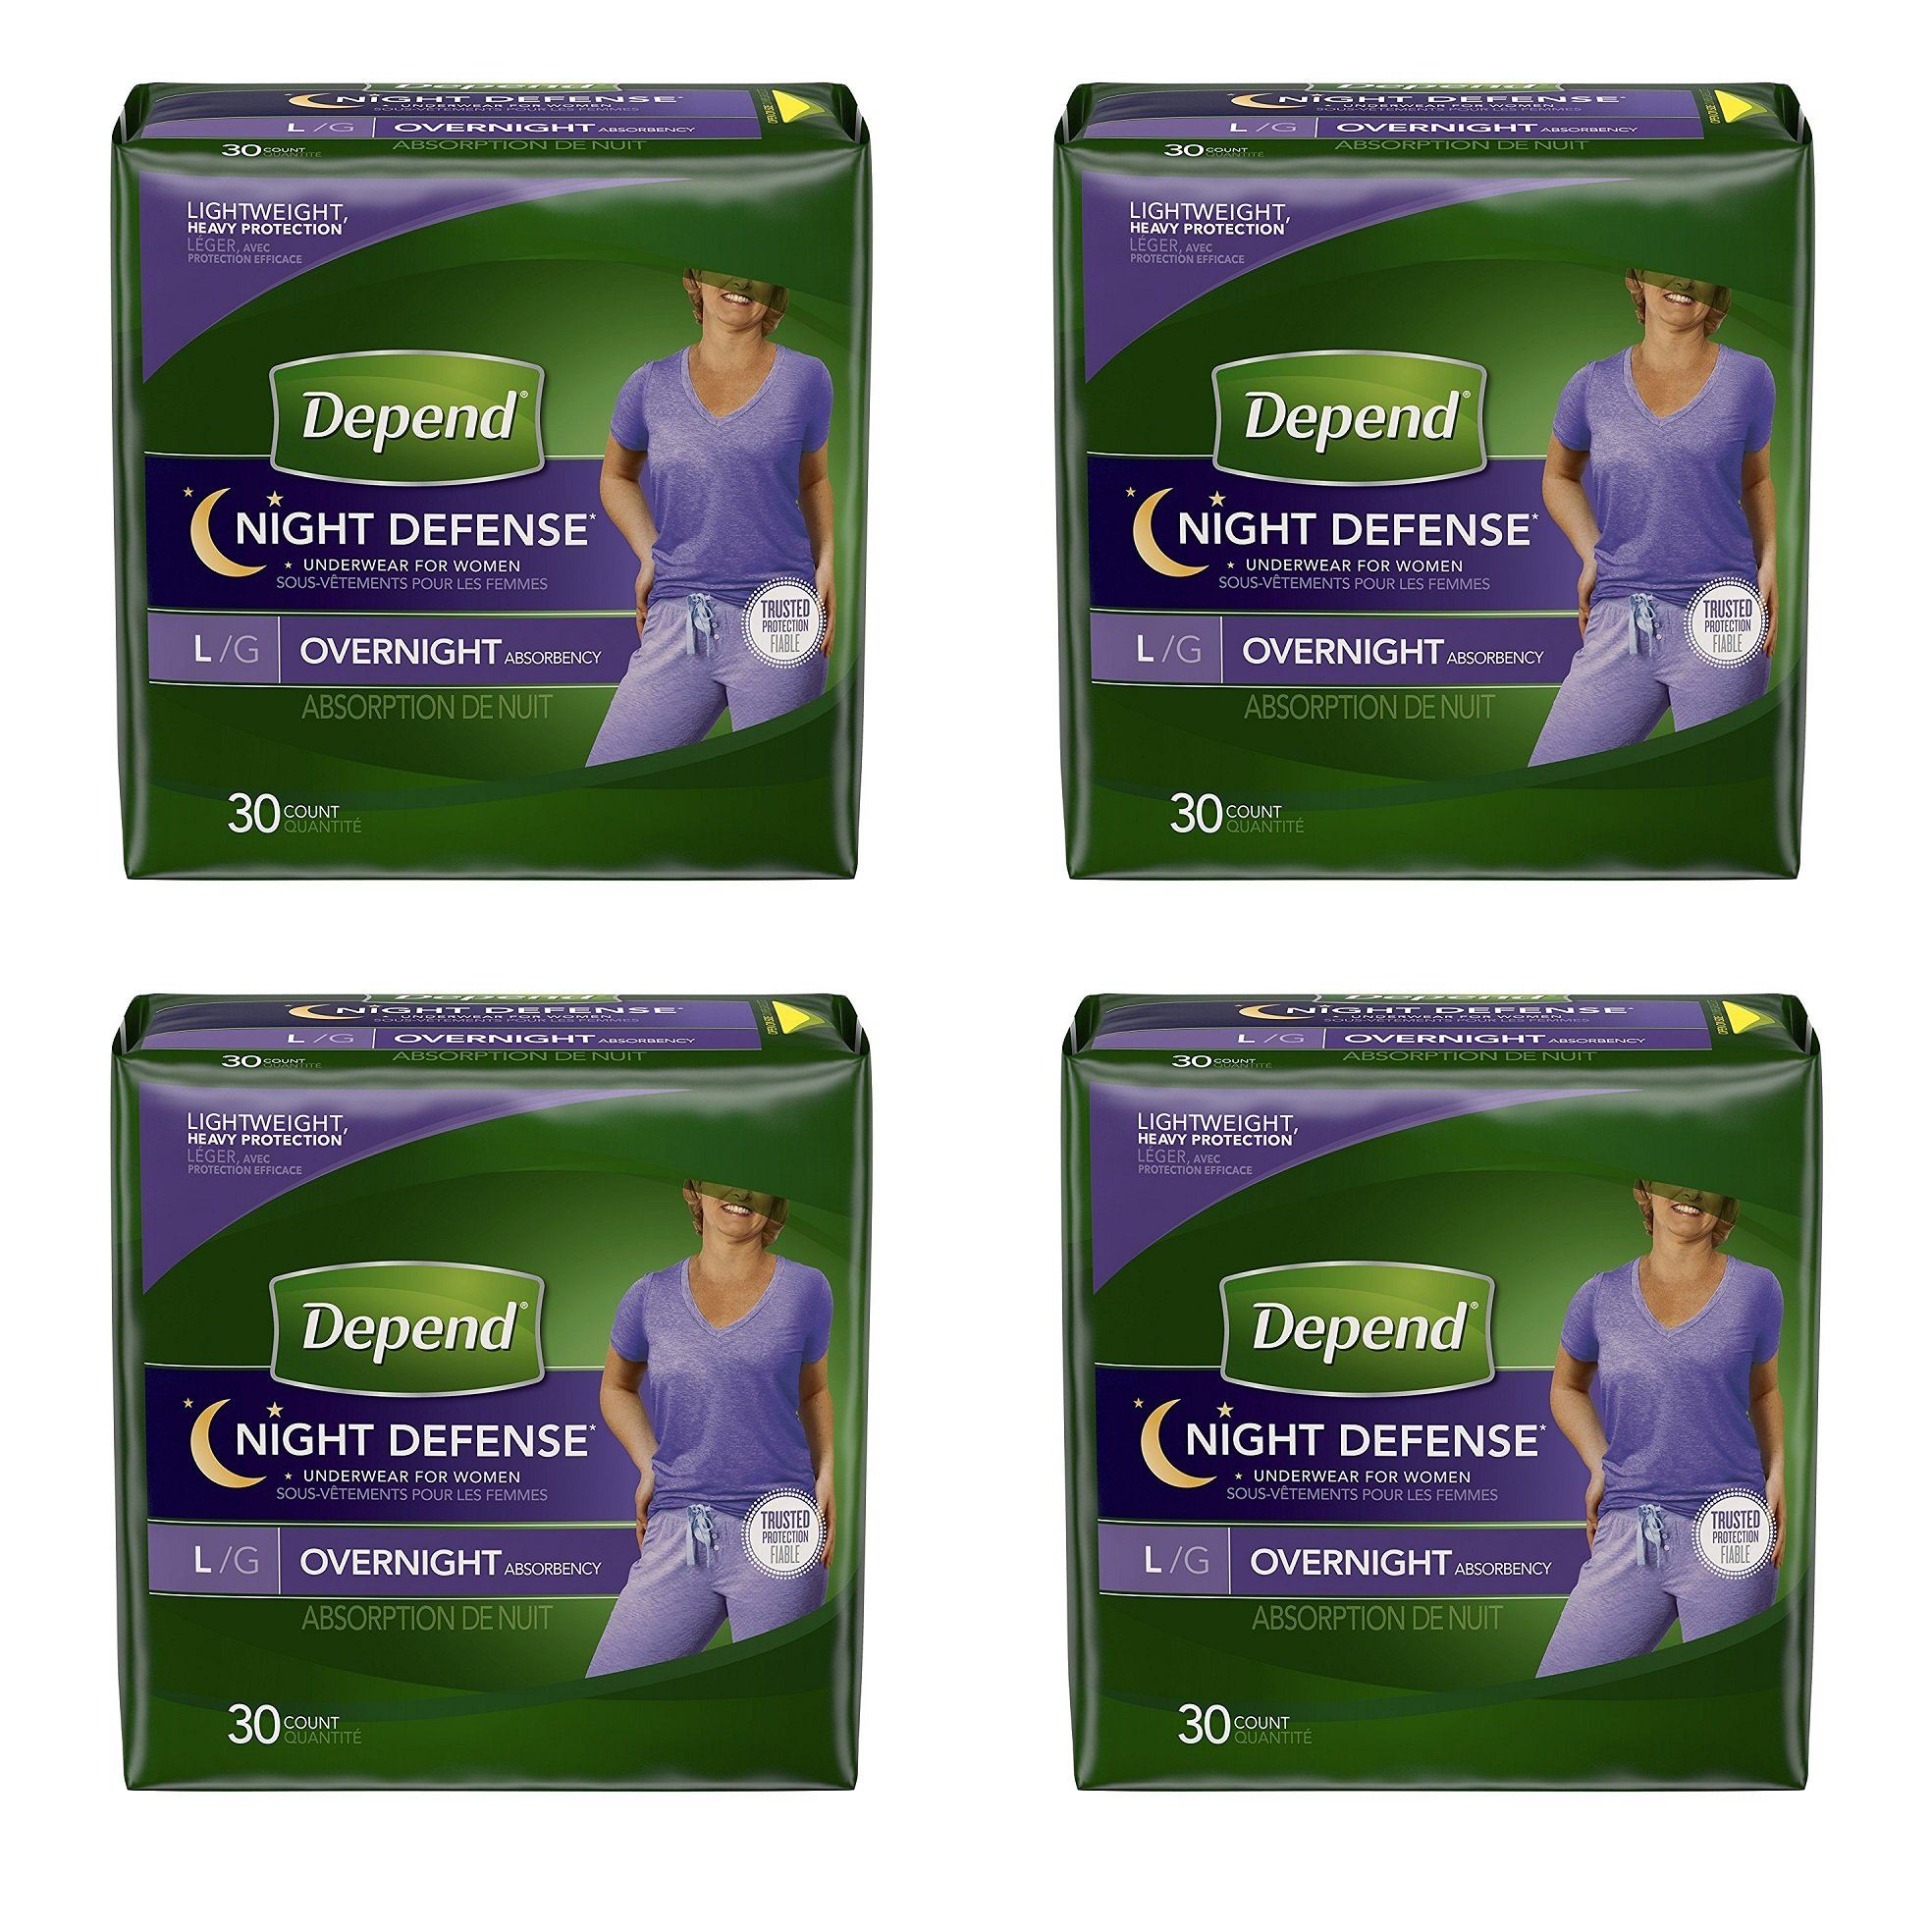 Depend Night Defense xYeNwp Incontinence Overnight Underwear for Women, Large, 30 Count (Pack of 4)